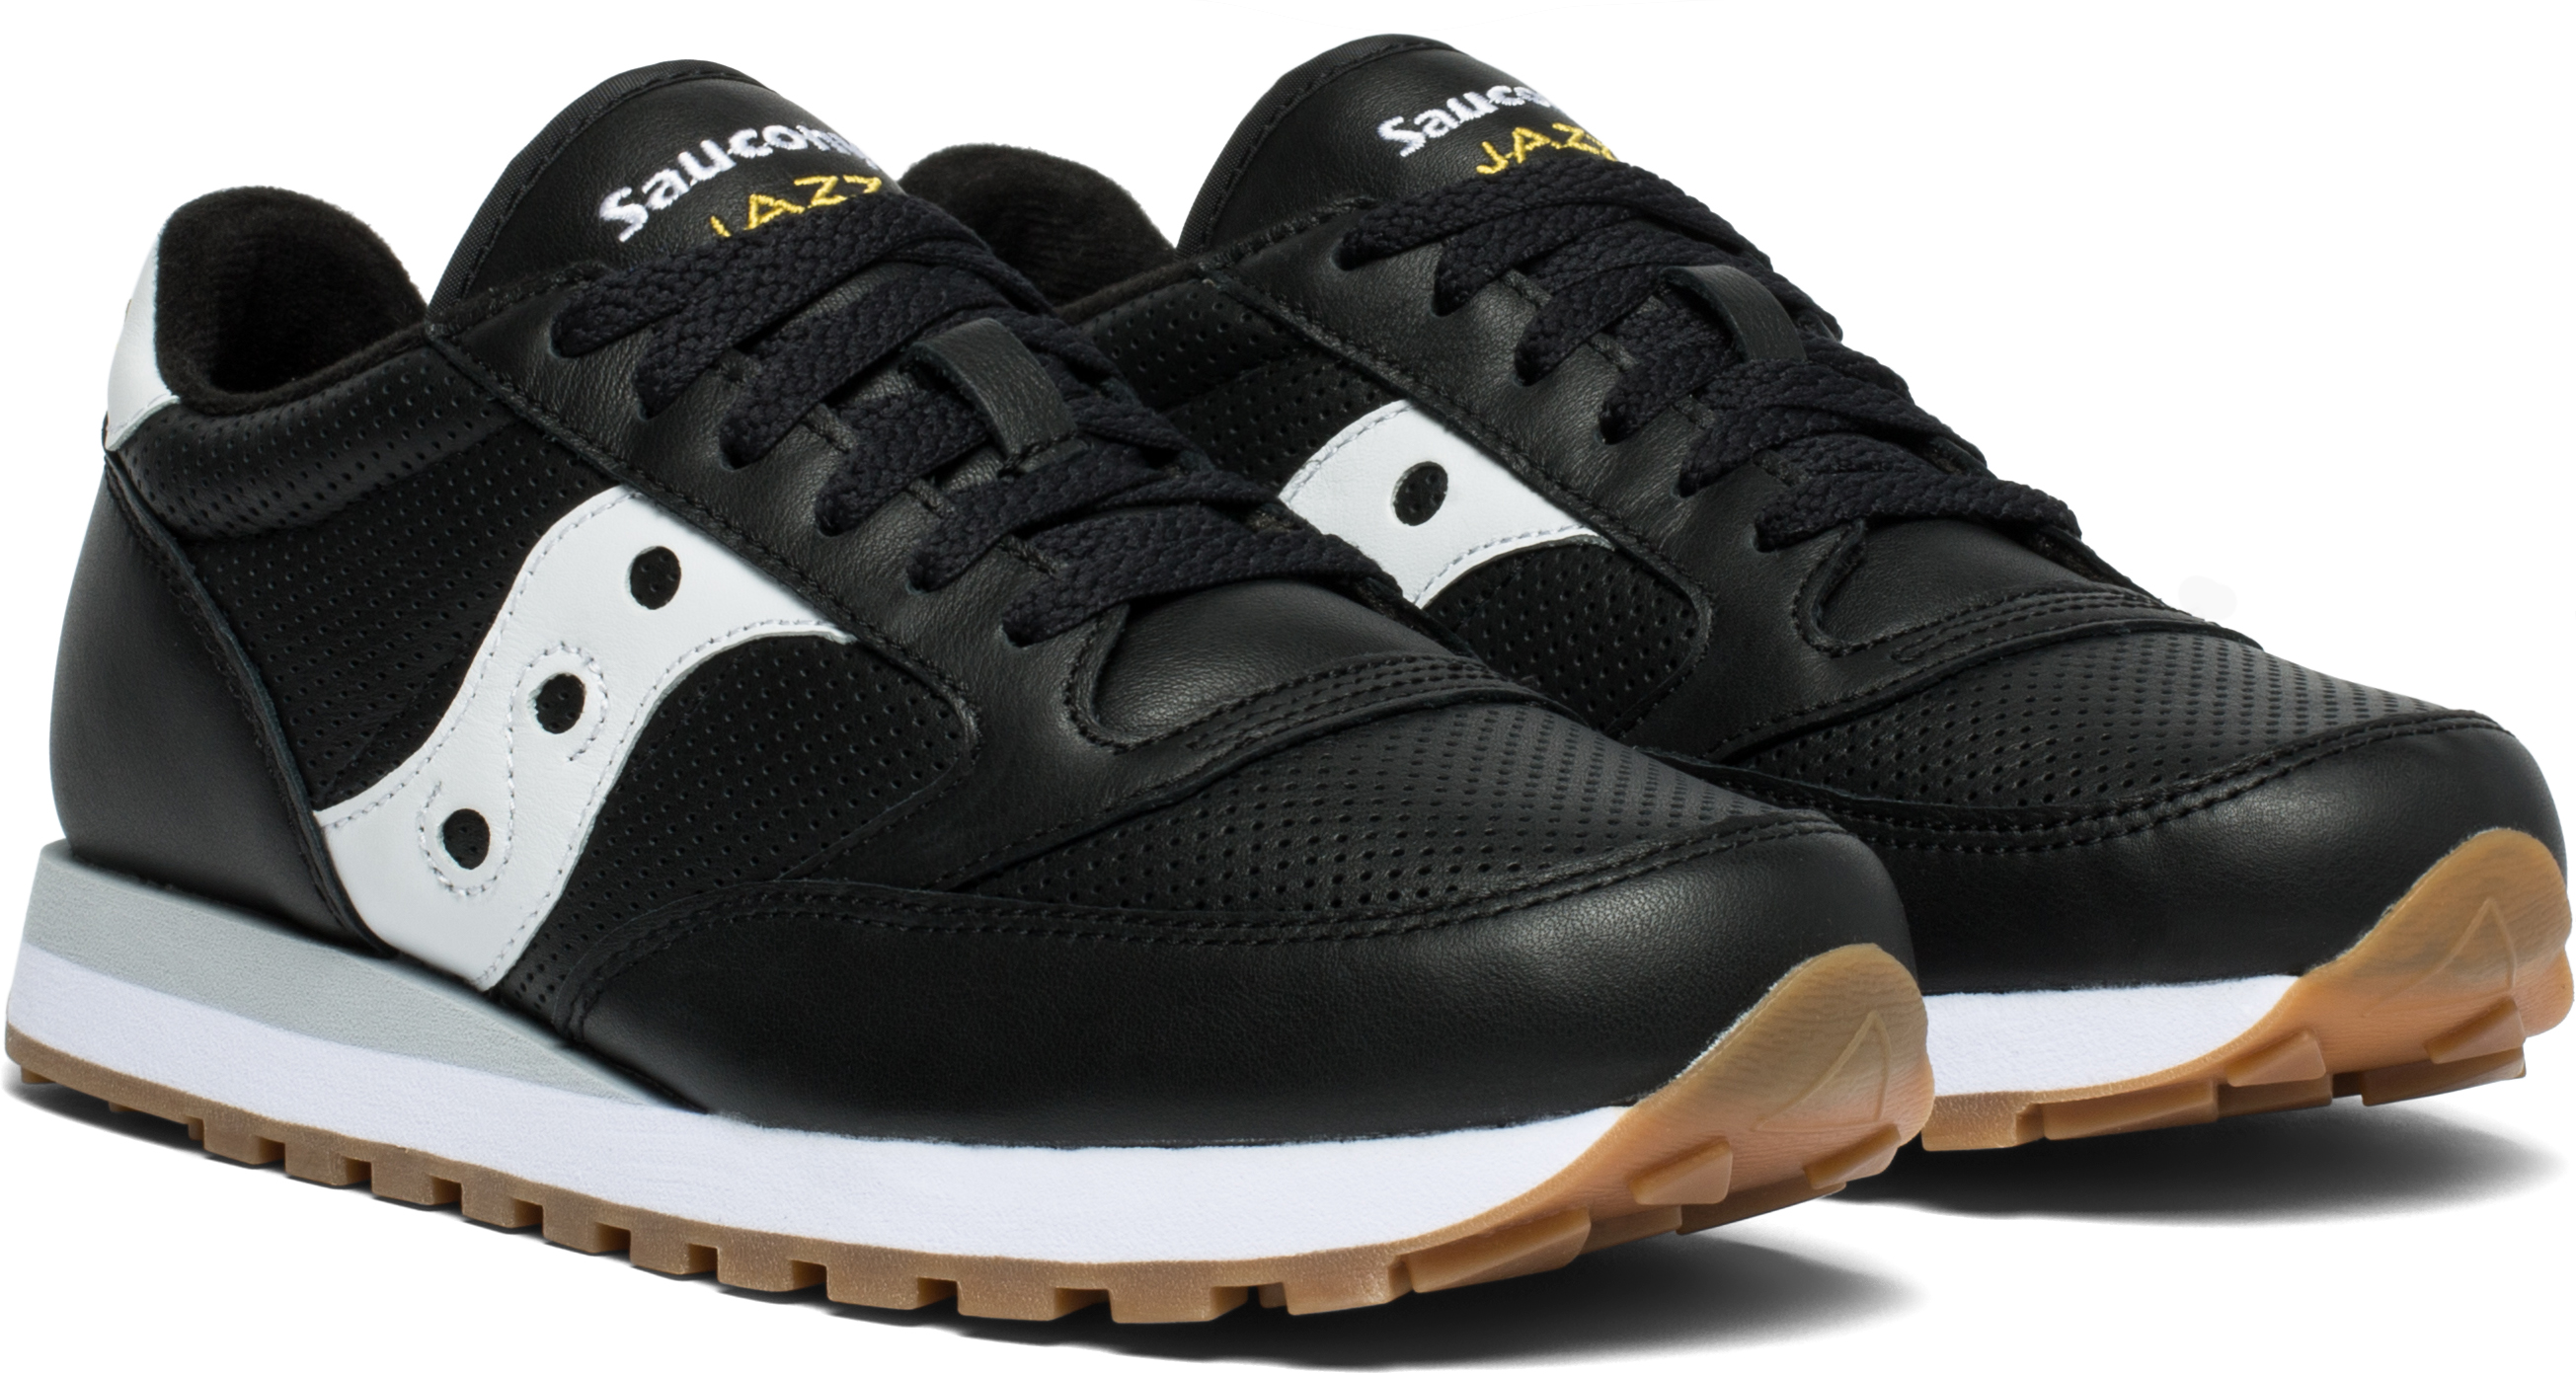 The Jazz Original shoe in black leather